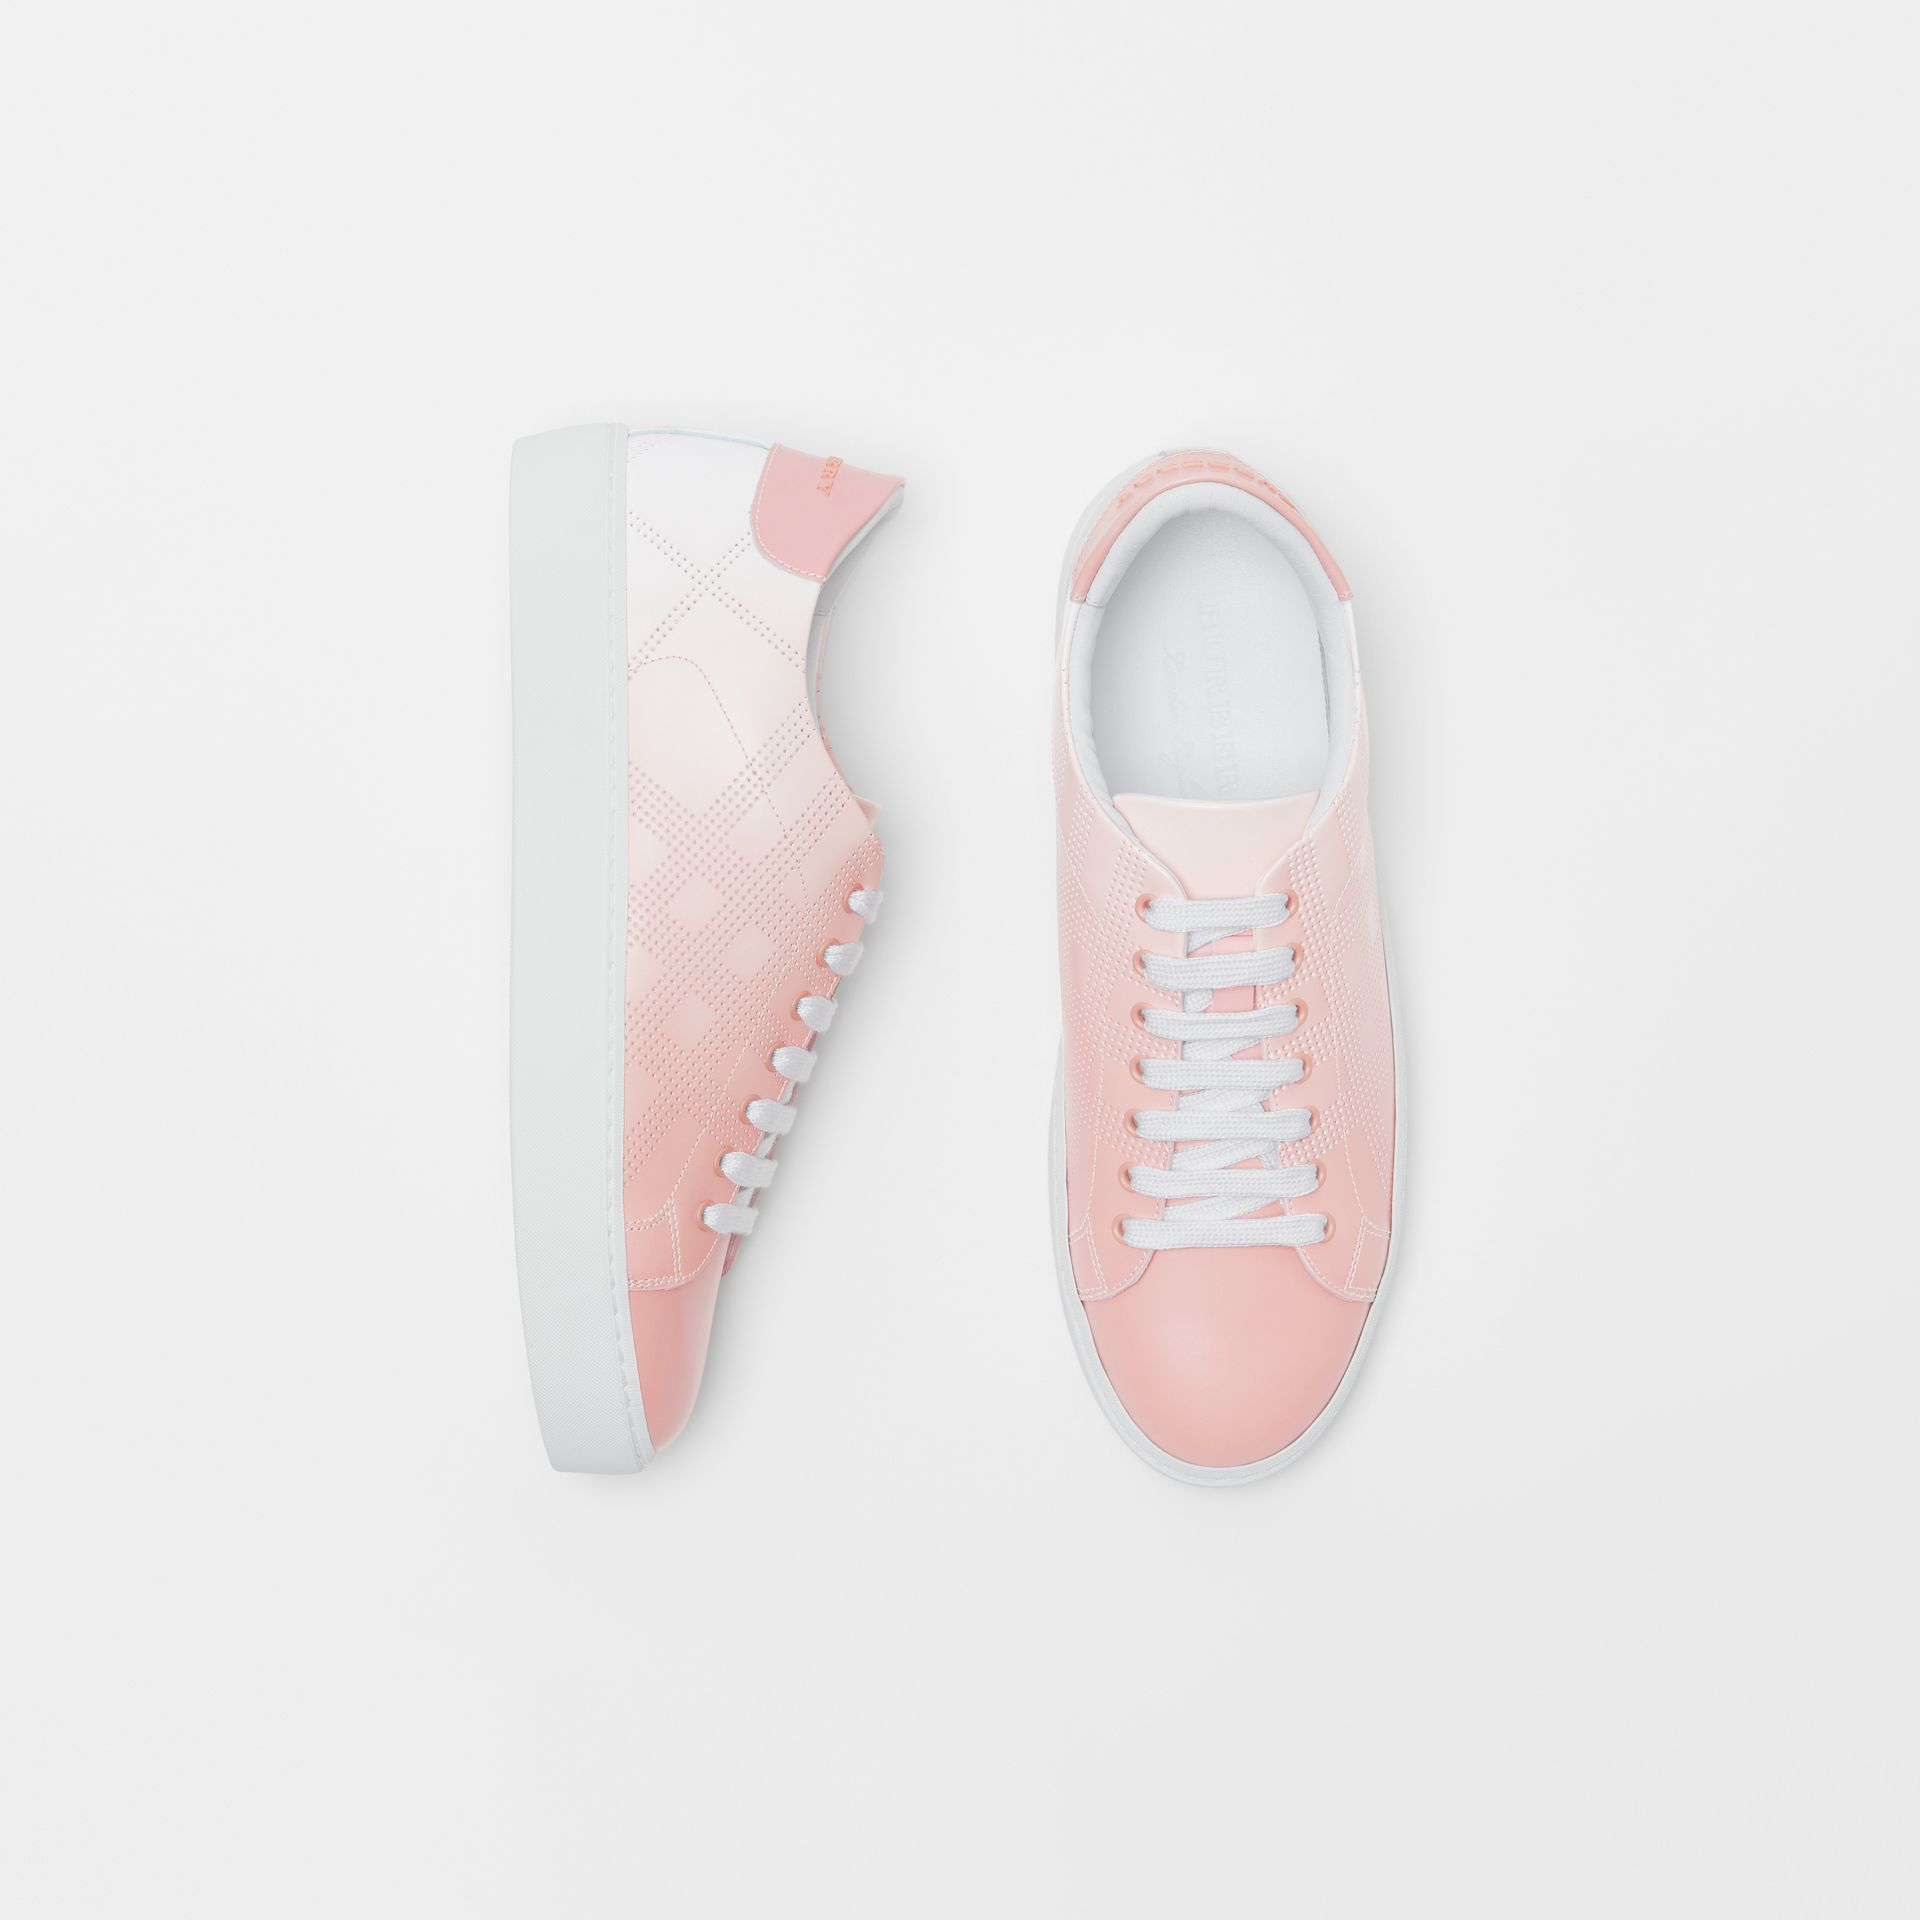 Perforated Check Dégradé Leather Sneakers in Sugar Pink - Women | Burberry United States - gallery image 0